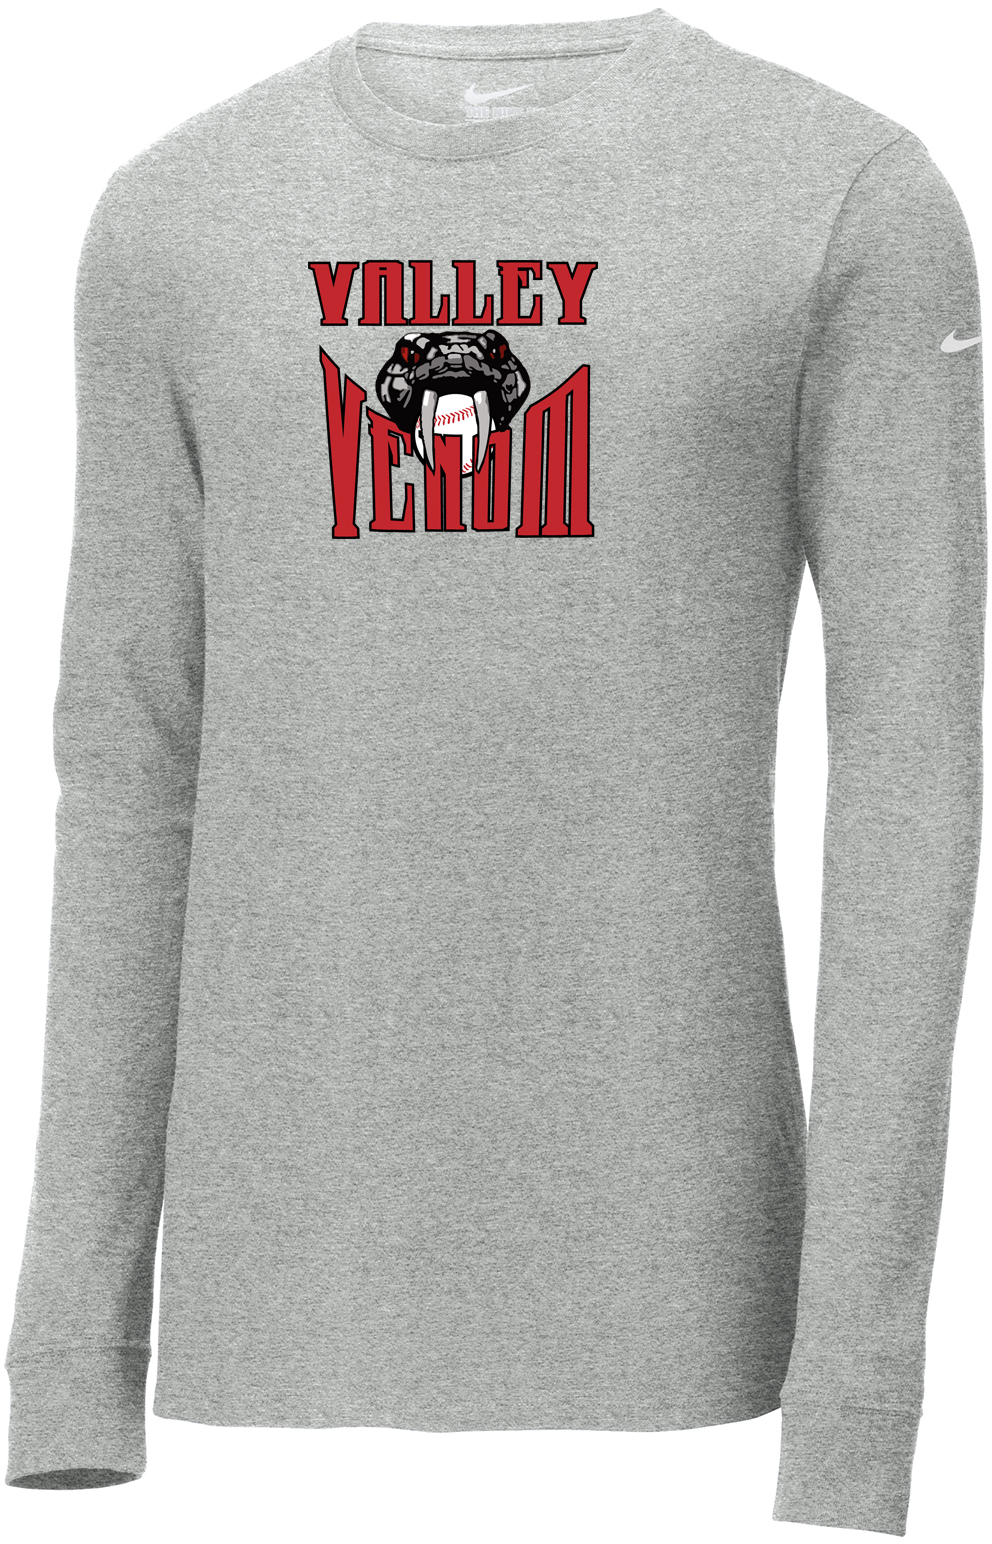 Valley Venom Baseball Nike Core Cotton Long Sleeve Tee